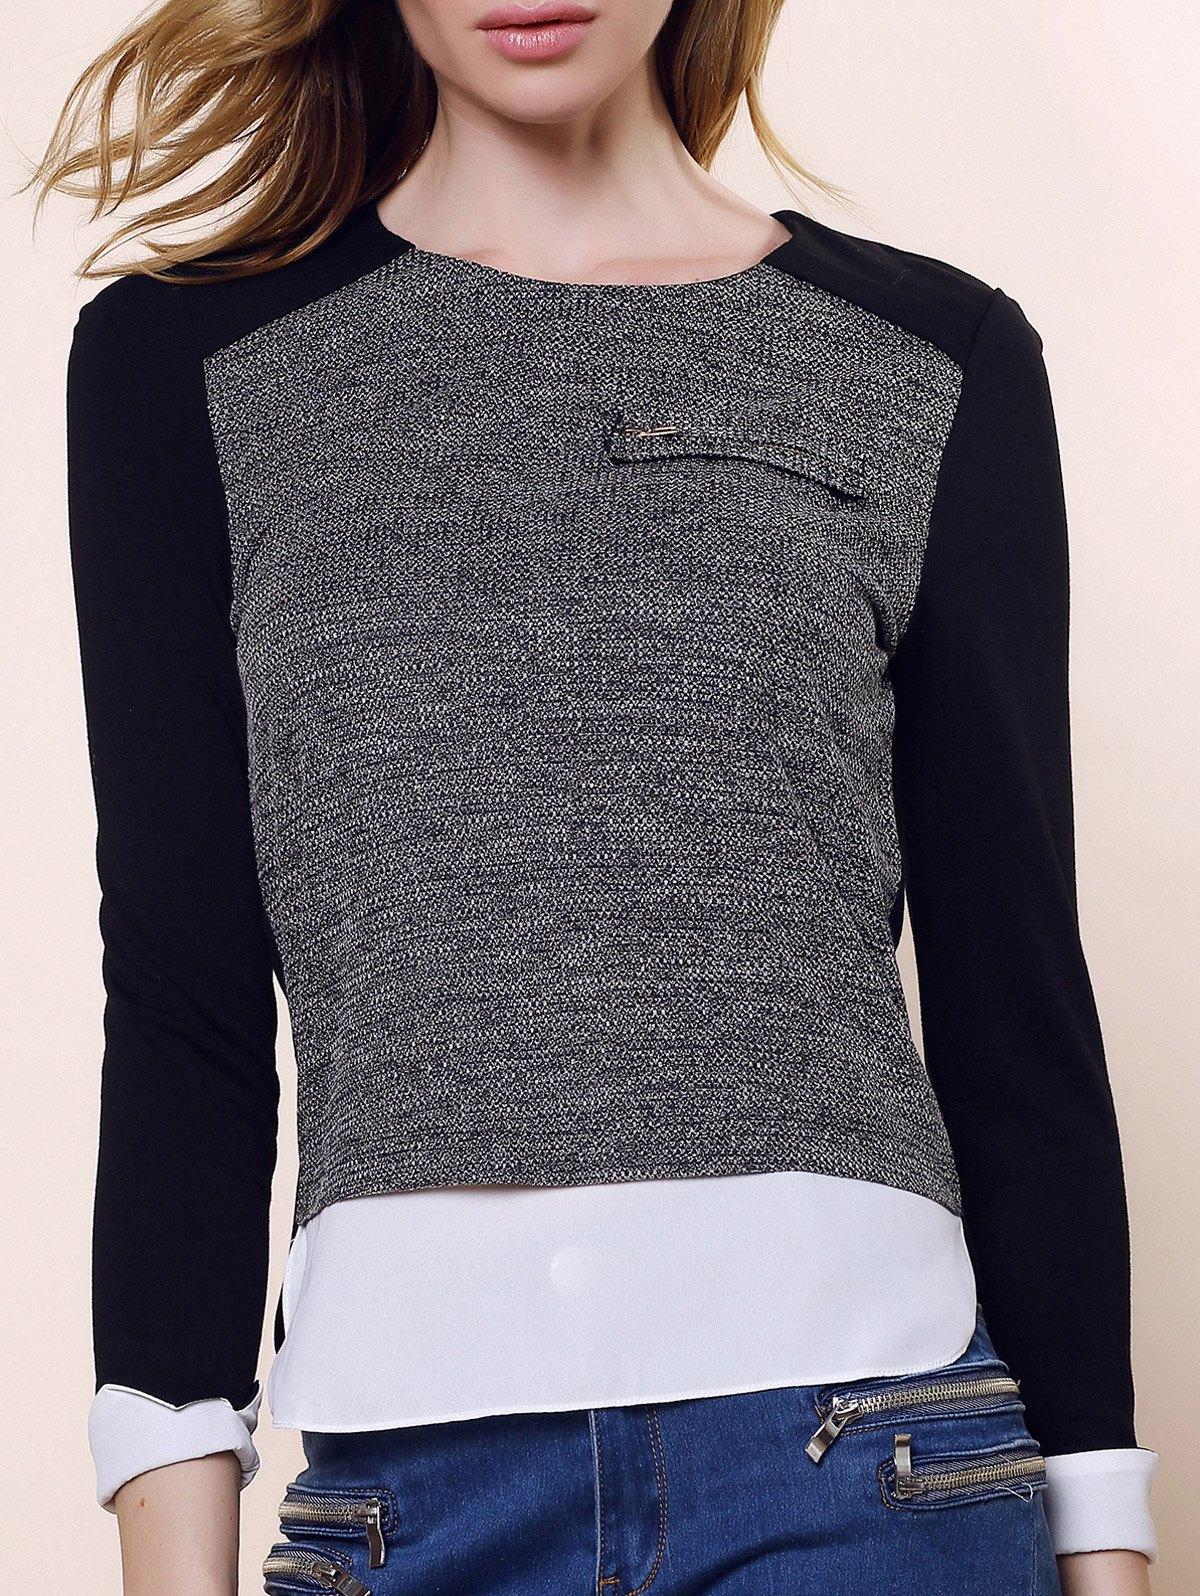 Vintage Round Collar Three Colors Matching Long Sleeves Womnes BlouseWOMEN<br><br>Size: L; Color: BLACK AND GREY; Style: Vintage; Material: Polyester; Shirt Length: Regular; Sleeve Length: Full; Collar: Round Neck; Pattern Type: Patchwork; Embellishment: Zippers; Weight: 0.550kg; Package Contents: 1 ? Blouse;